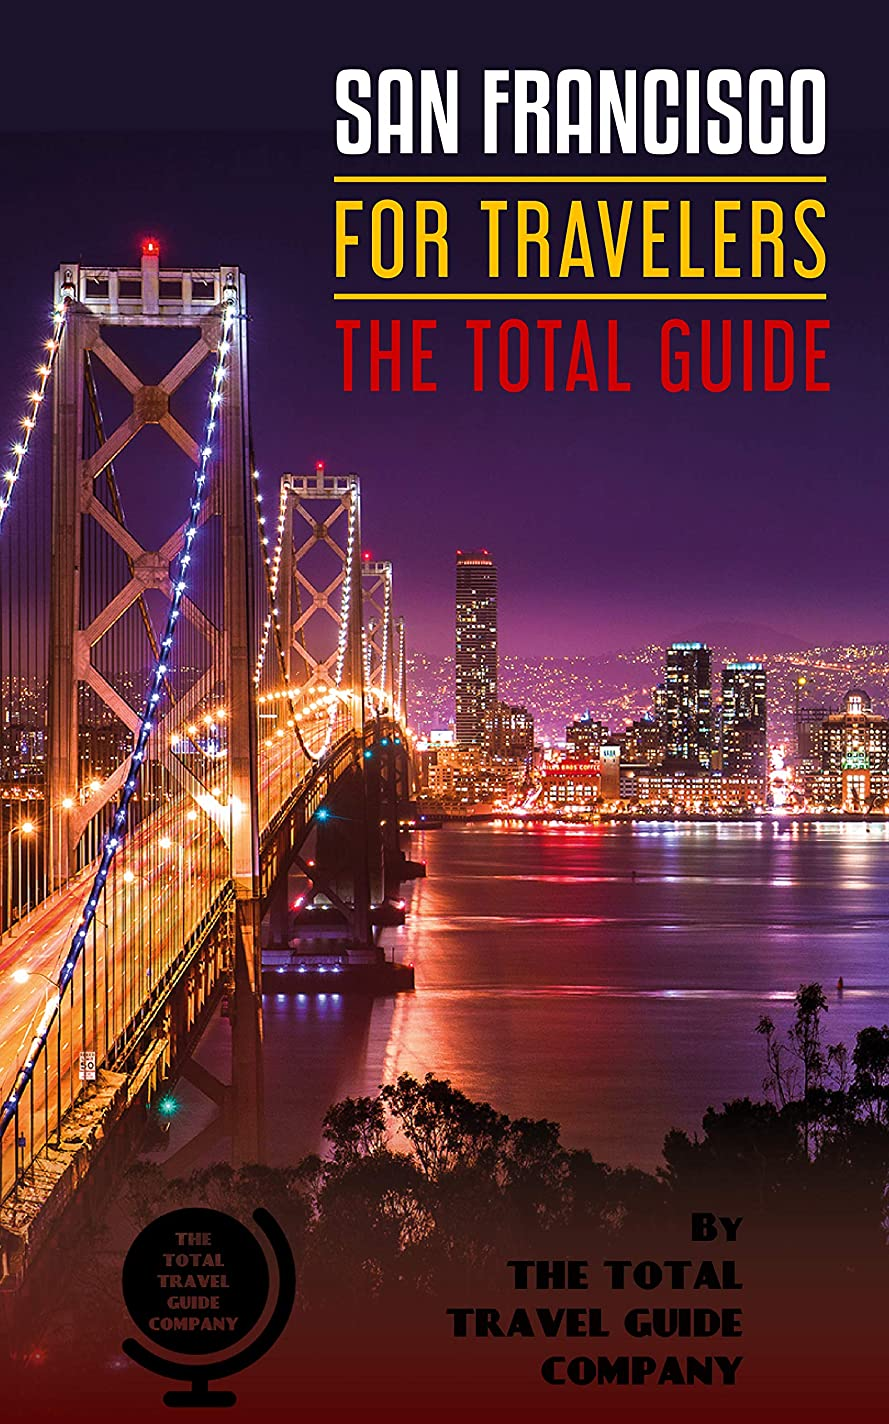 背骨消費する避難SAN FRANCISCO FOR TRAVELERS. The total guide: The comprehensive traveling guide for all your traveling needs. By THE TOTAL TRAVEL GUIDE COMPANY (English Edition)